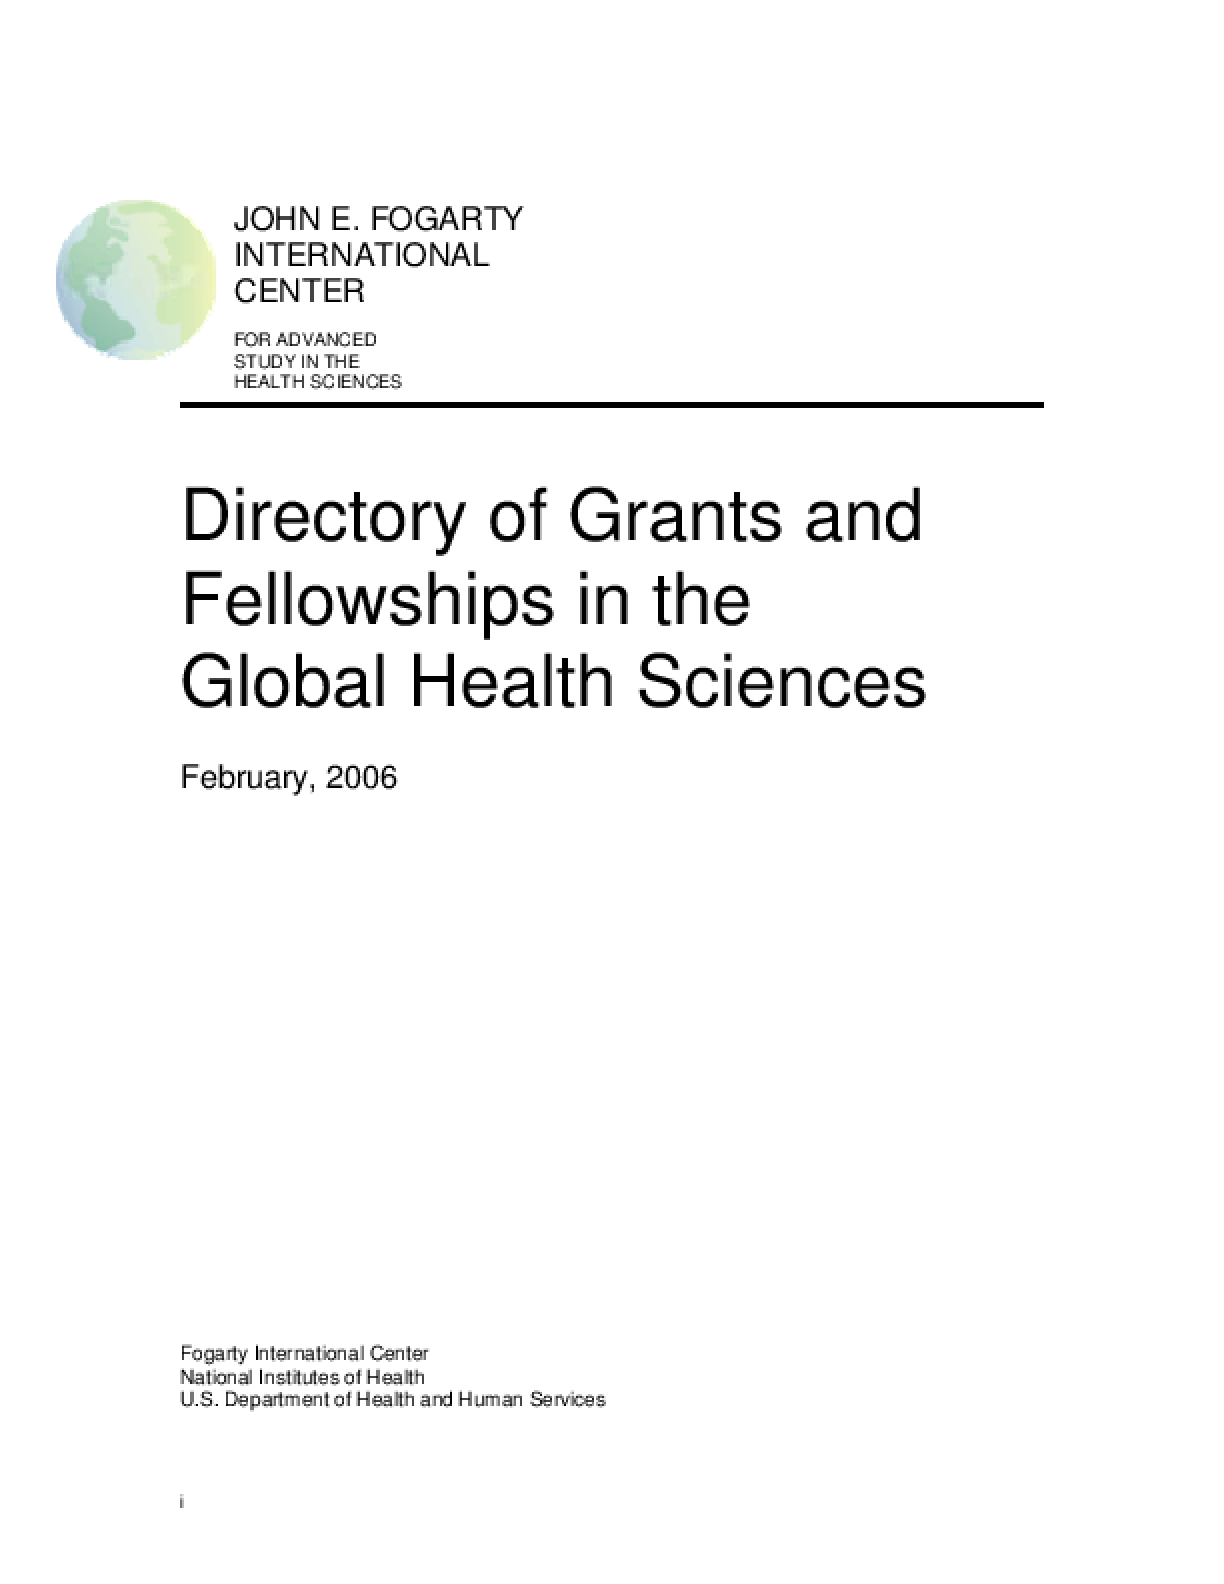 Directory of Grants and Fellowships in the Global Health Sciences